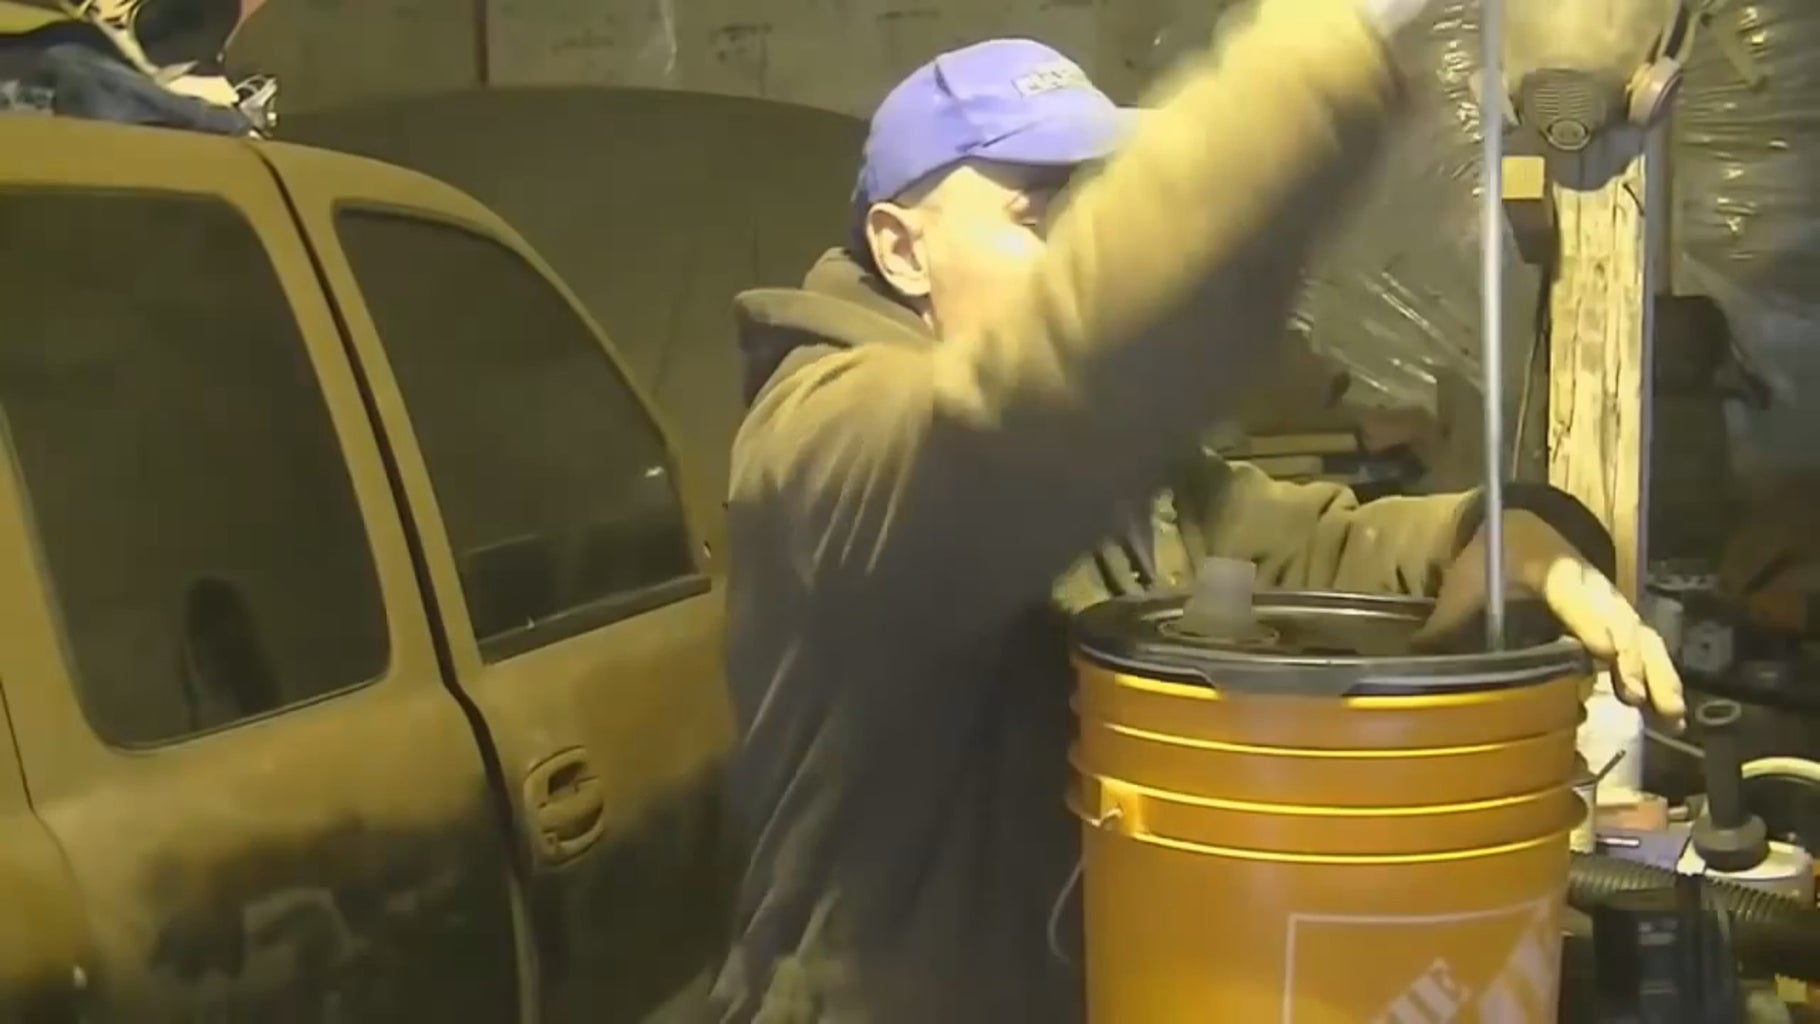 Step #1 - Make Hole in Your Bucket Lid